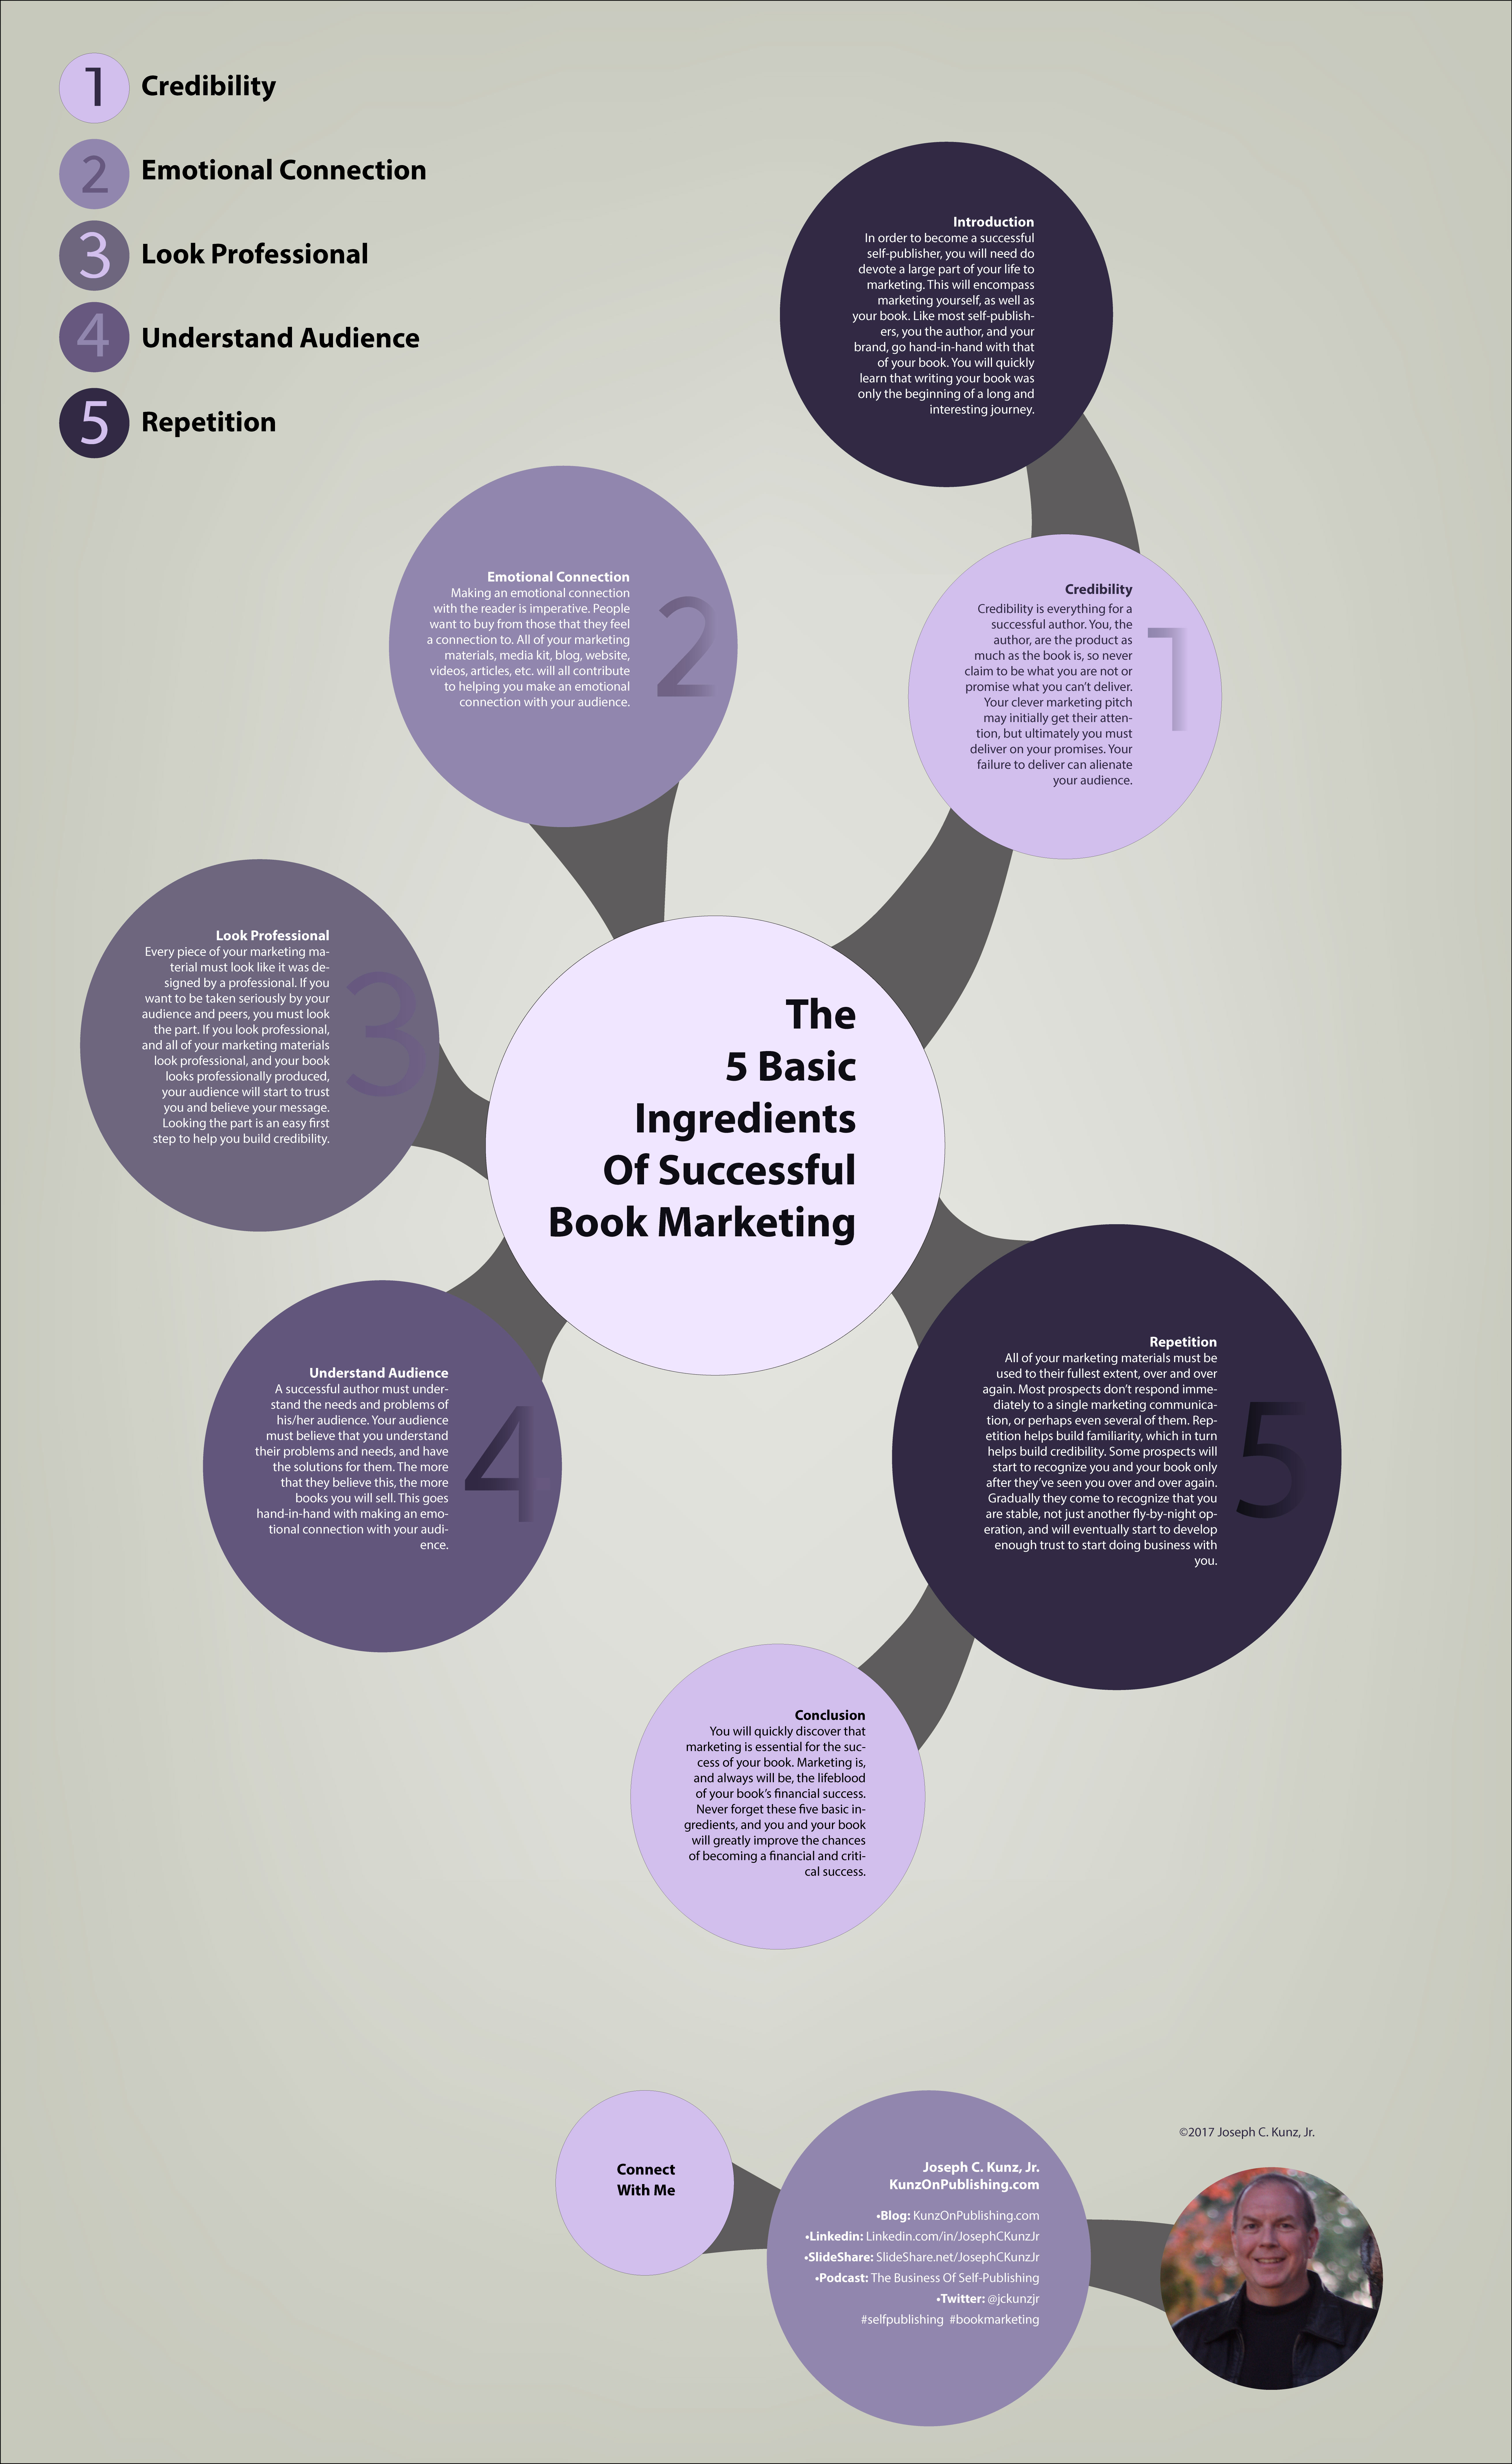 The 5 Basic Ingredients Of Successful Book Marketing (Infographic) by Joseph C. Kunz, Jr.